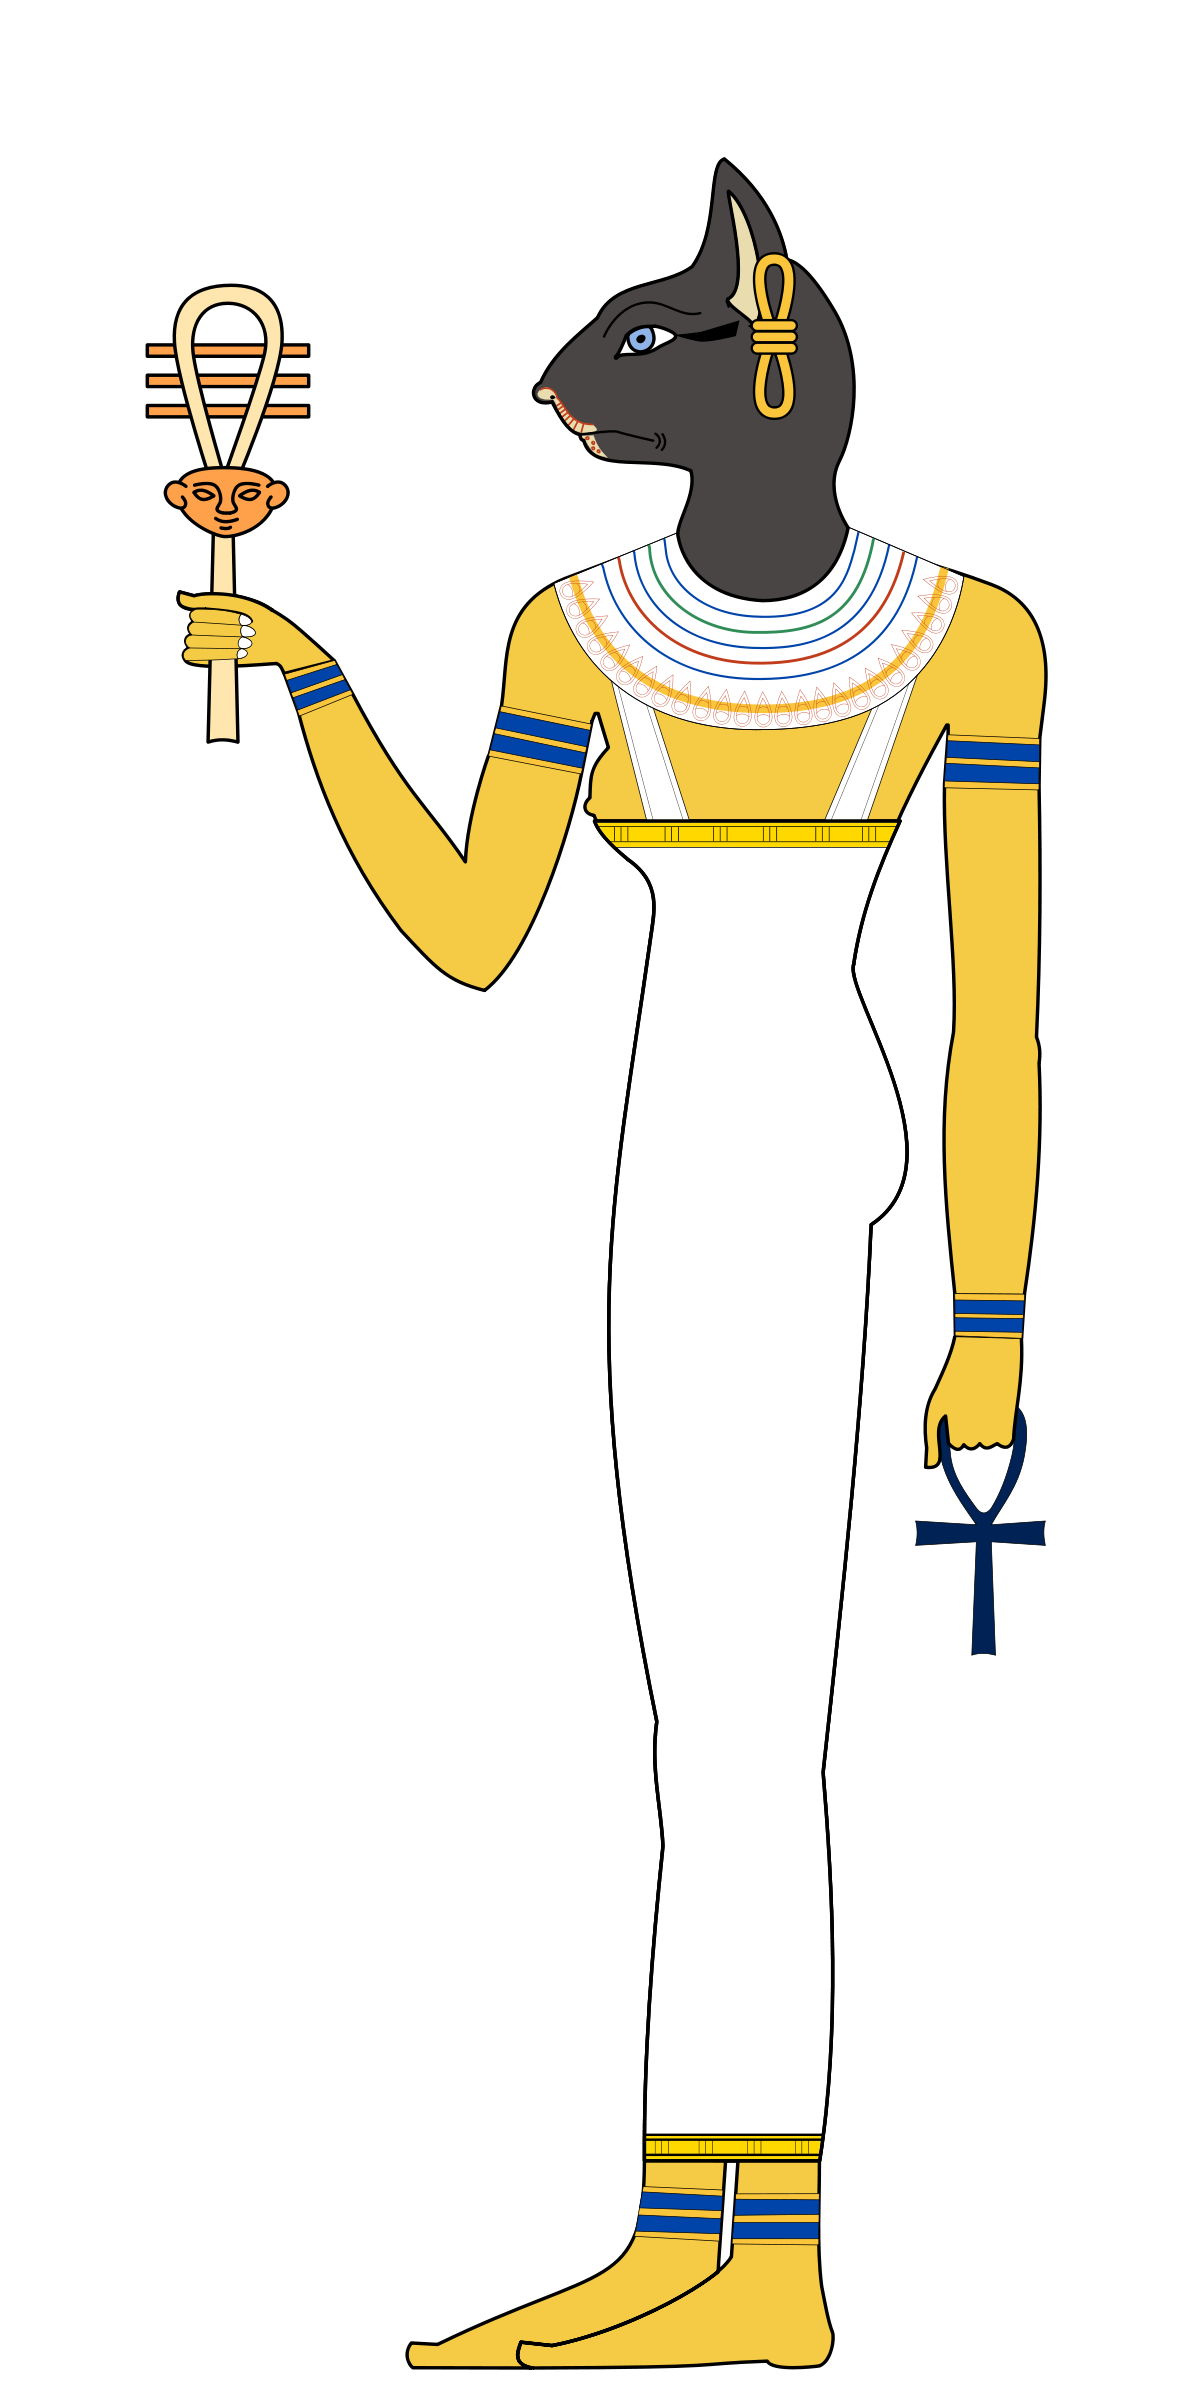 Apophis god of egypt clipart graphic download Bastet - Wikipedia graphic download